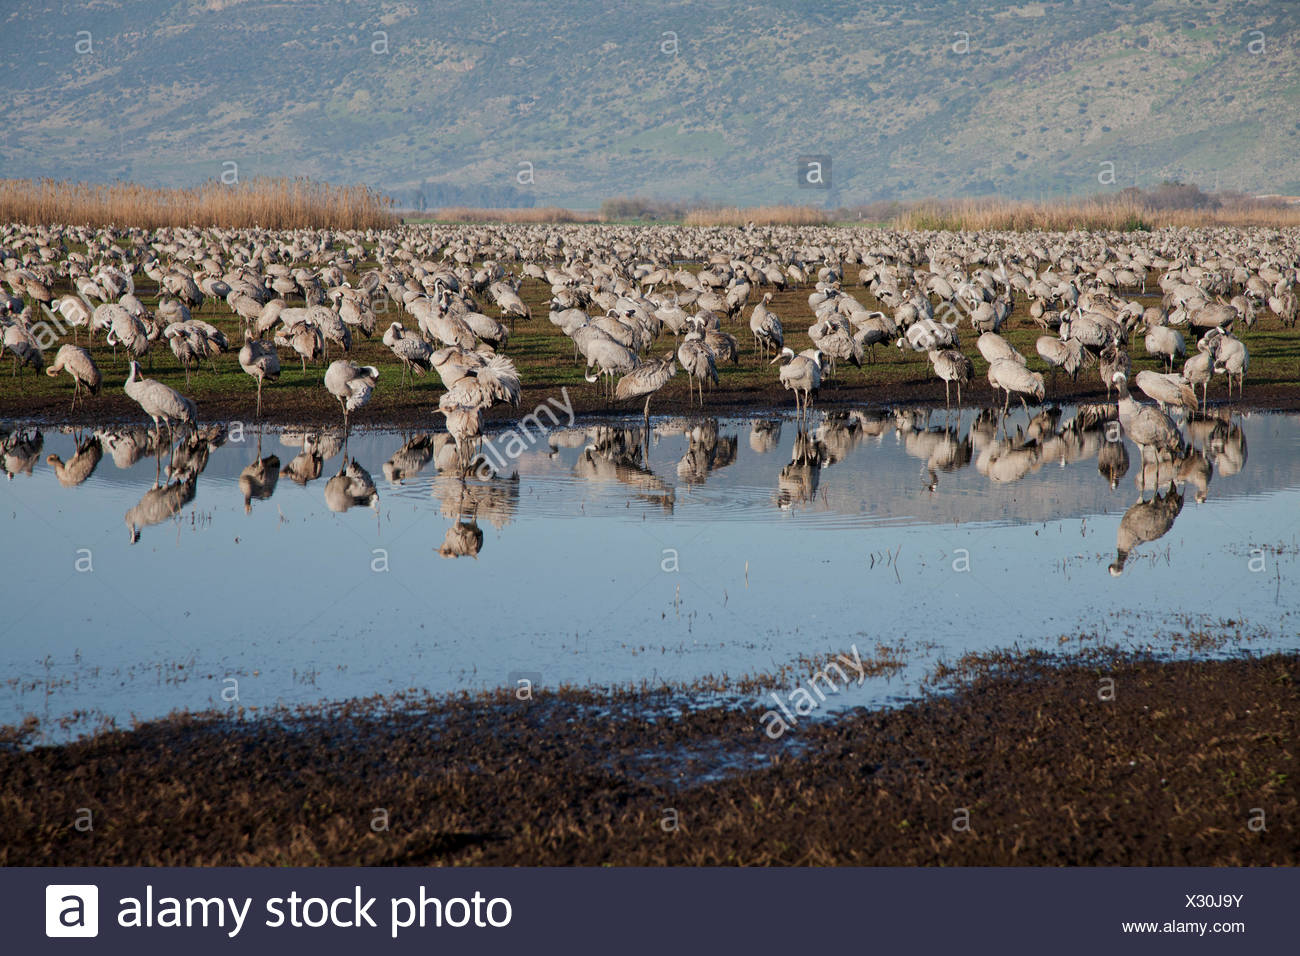 Common Crane (Grus grus) a flock in wetland, hula valley, israel. Large migratory crane species that lives in wet meadows and ma - Stock Image